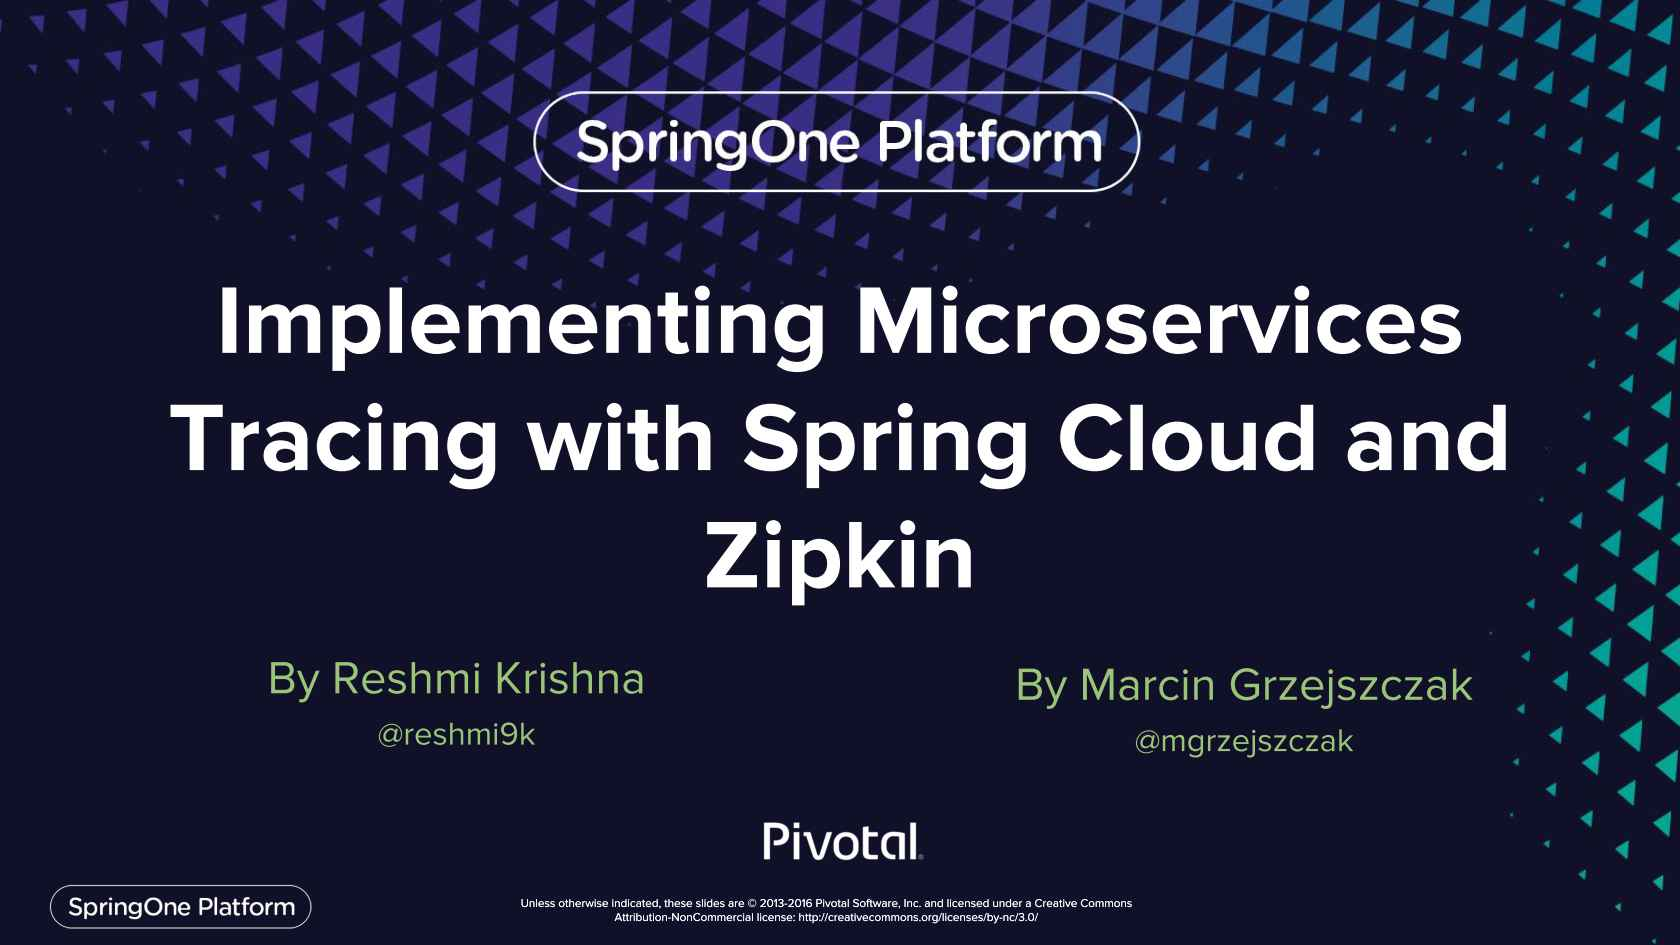 Implementing Microservices Tracing with Spring Cloud and